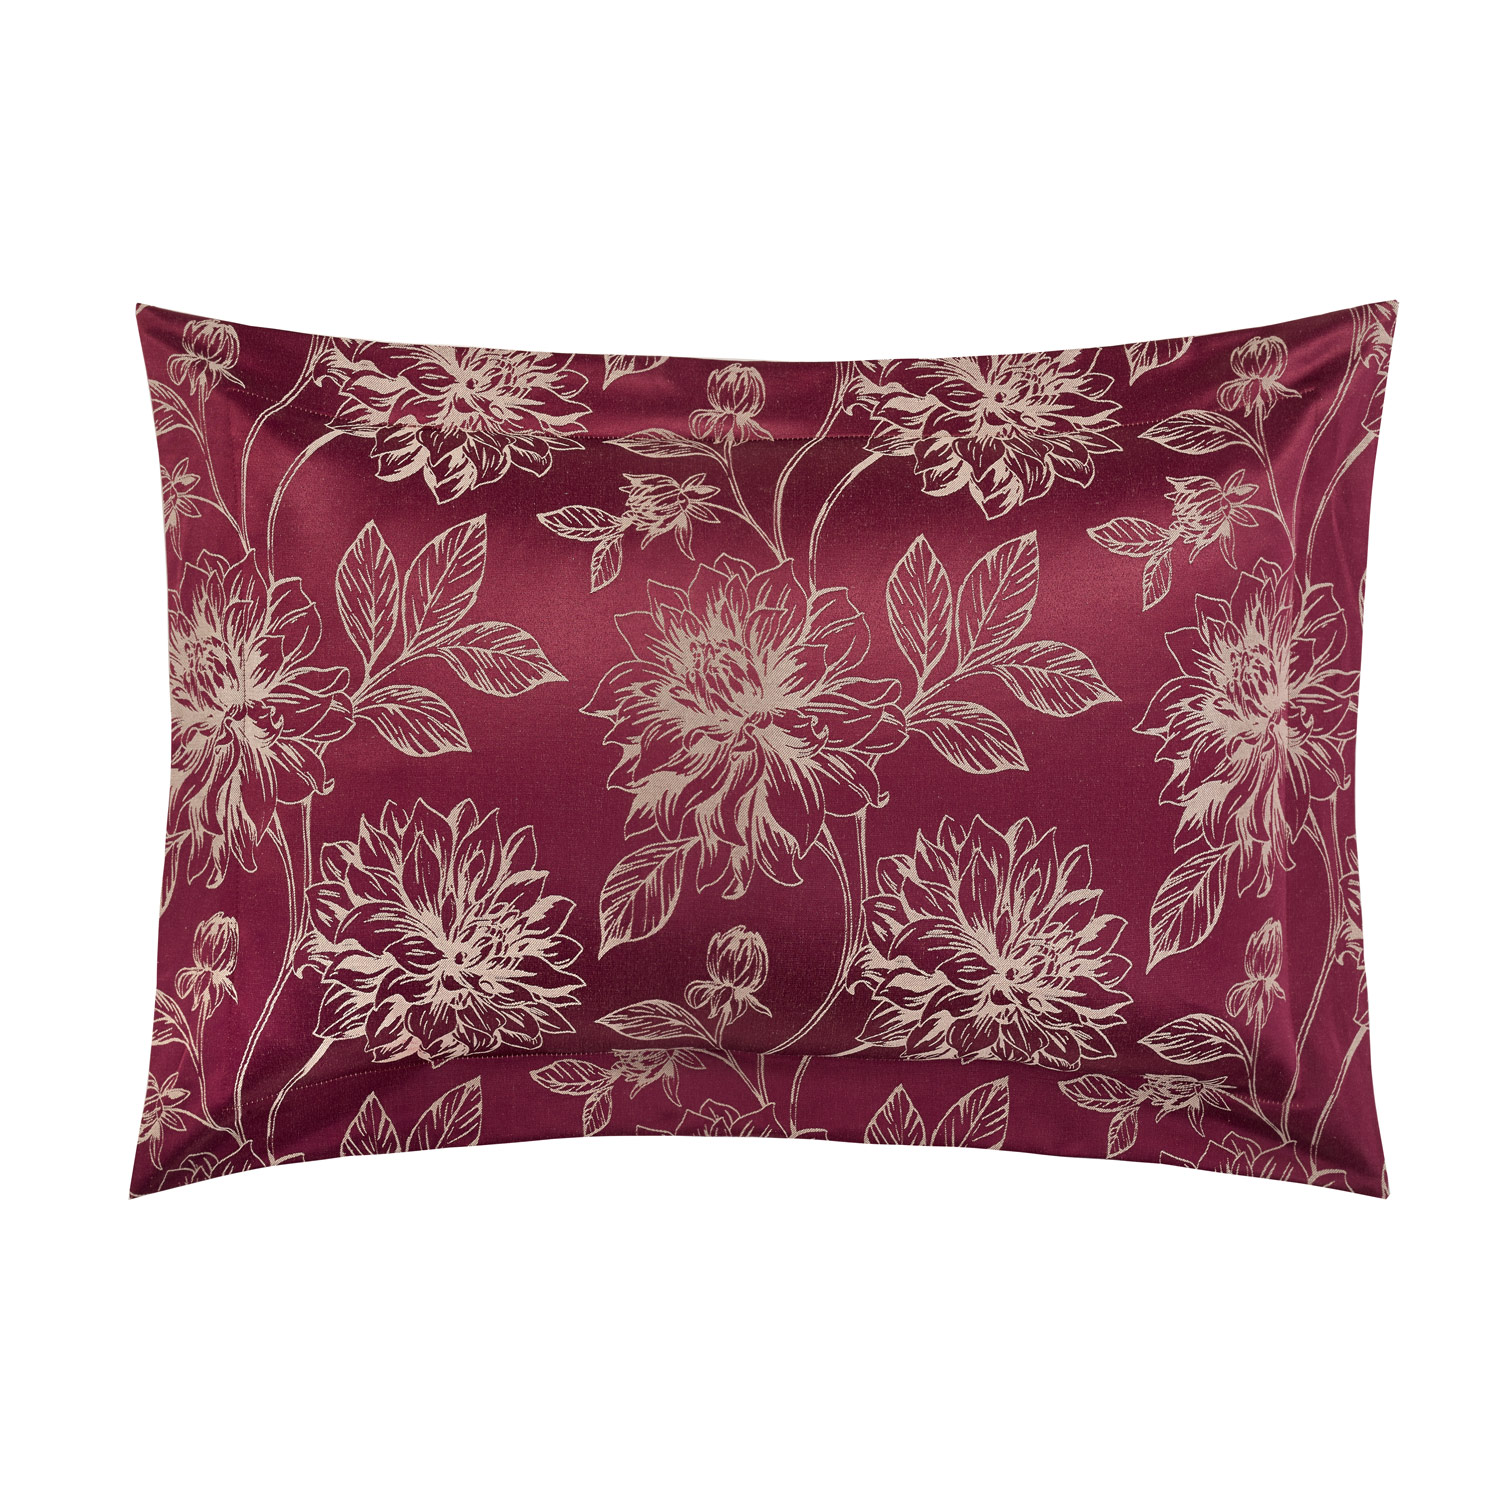 Stockists of Annabelle Raspberry Oxford Pillow Cases (Pair)